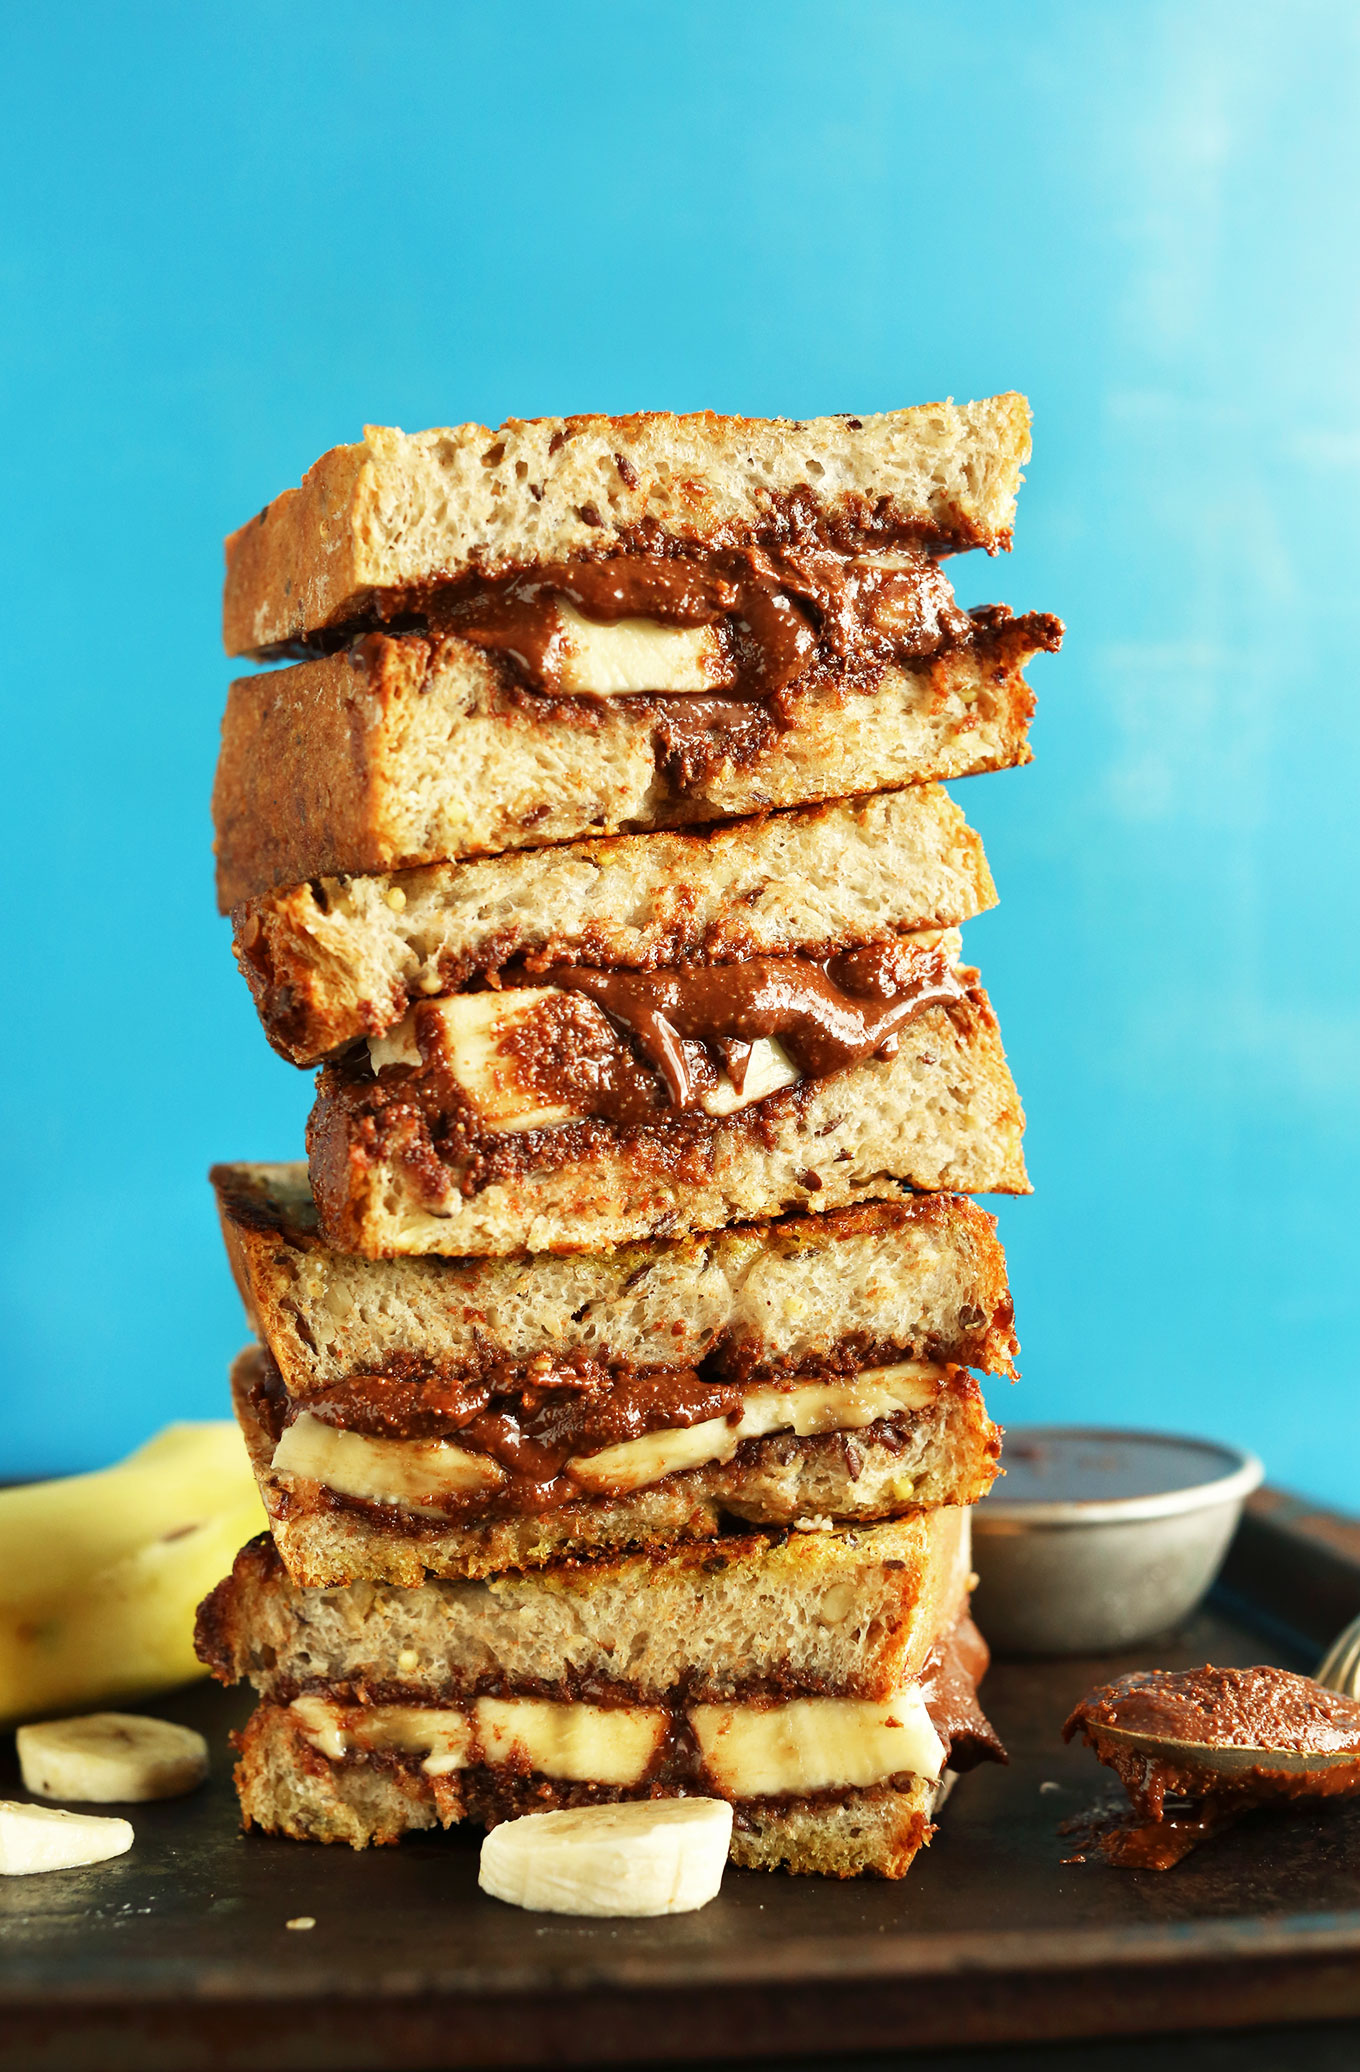 AMAZING-4-Ingredient-Grilled-Banana-Nutella-Sandwich-Entirely-vegan-so-crispy-and-SO-delicious_-vegan-minimalistbaker-nutella